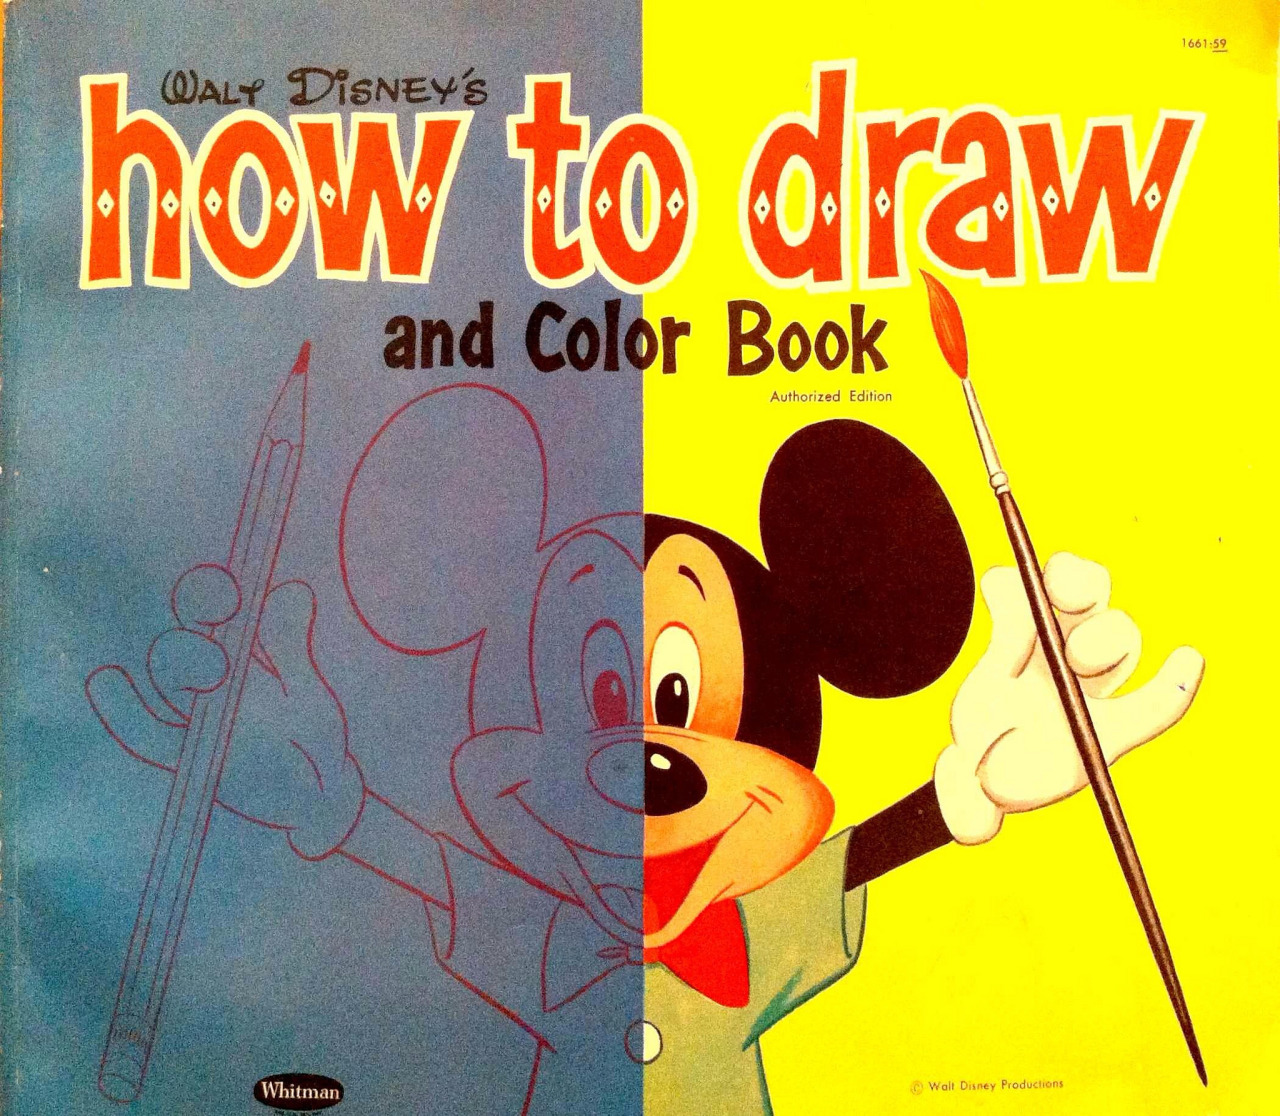 Image - Walt Disney\'s How to Draw and Color Book.jpg | Disney Wiki ...